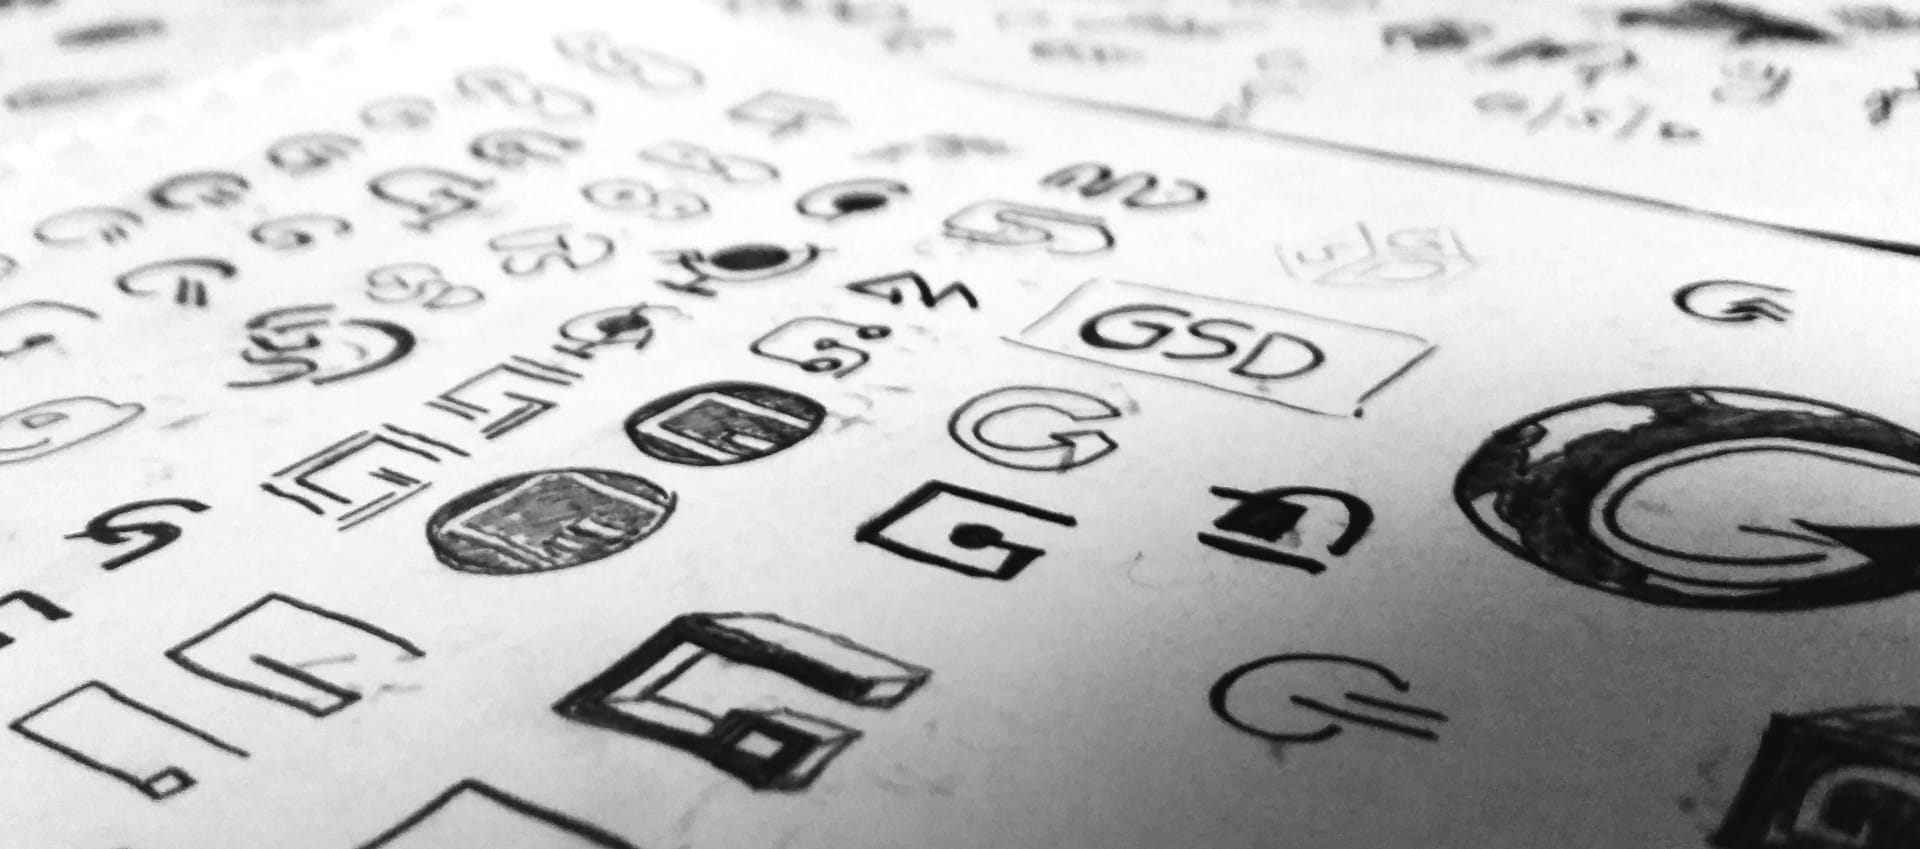 initial logo sketches